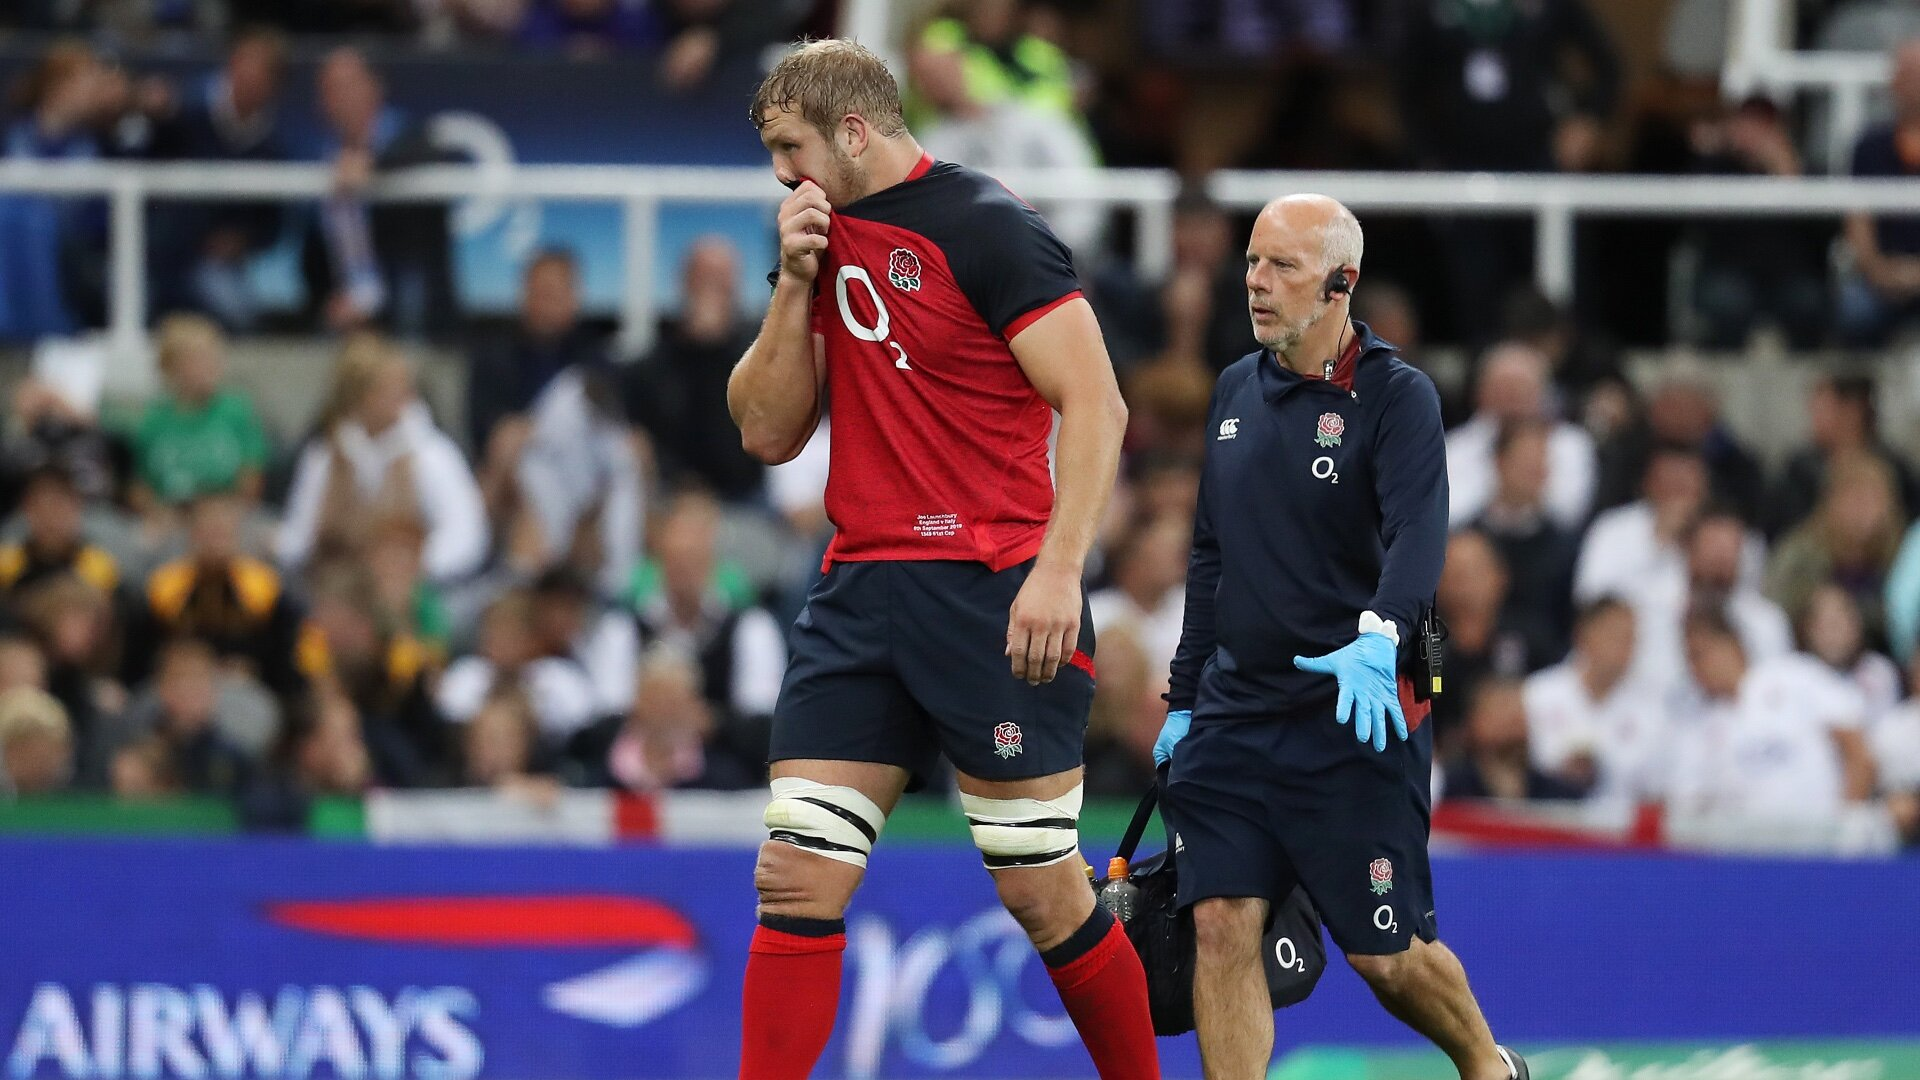 England provide an update on Joe Launchbury's fitness after Friday's night scare